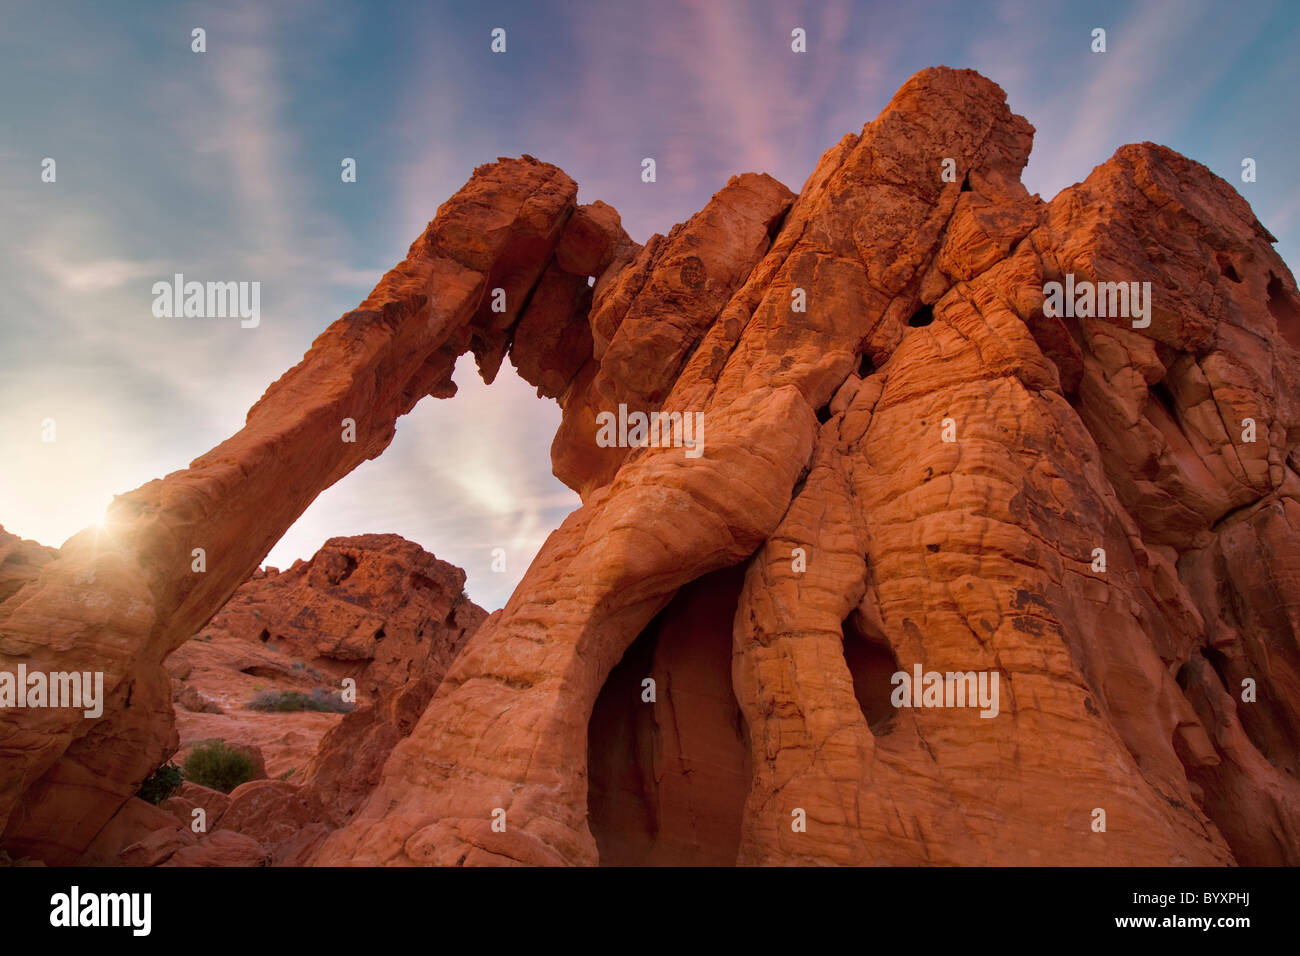 Elephant Rock and sunset clouds. Valley of Fire State Park, Nevada - Stock Image